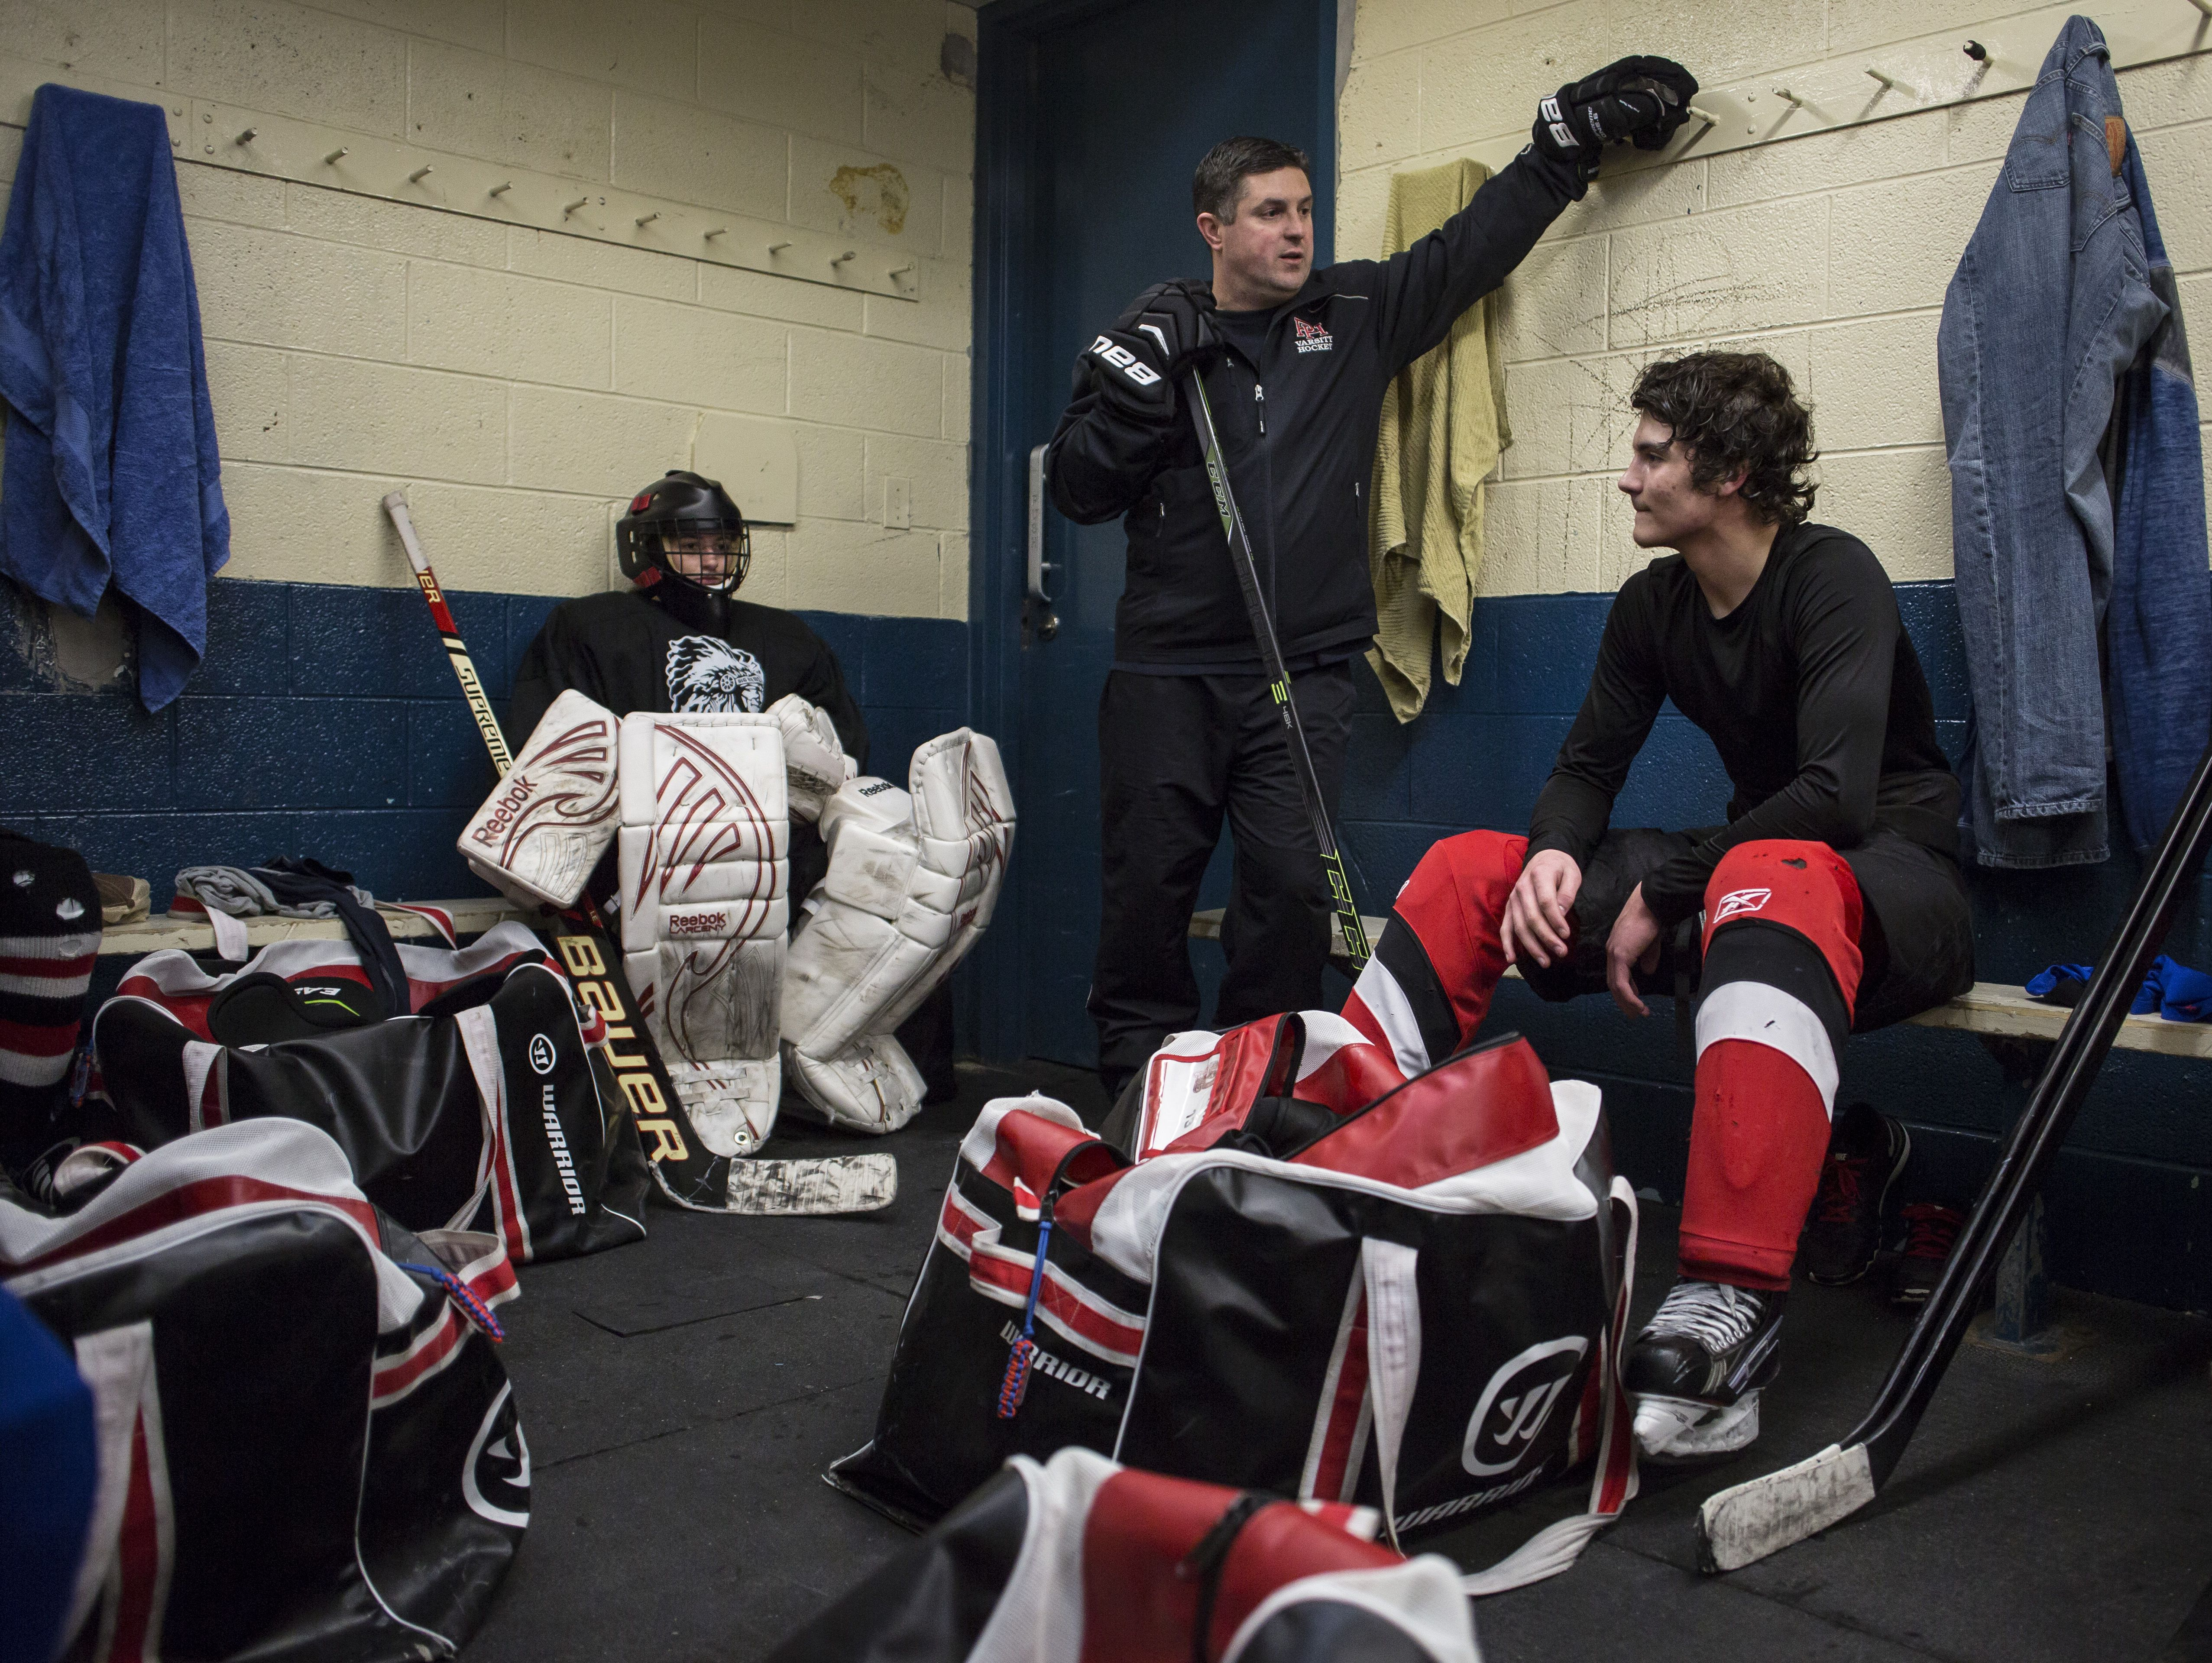 Port Huron goalie Ally Fetterly, left, listens as head coach Ben Poink speaks with players in the locker room during a practice at McMorran Arena in Port Huron.